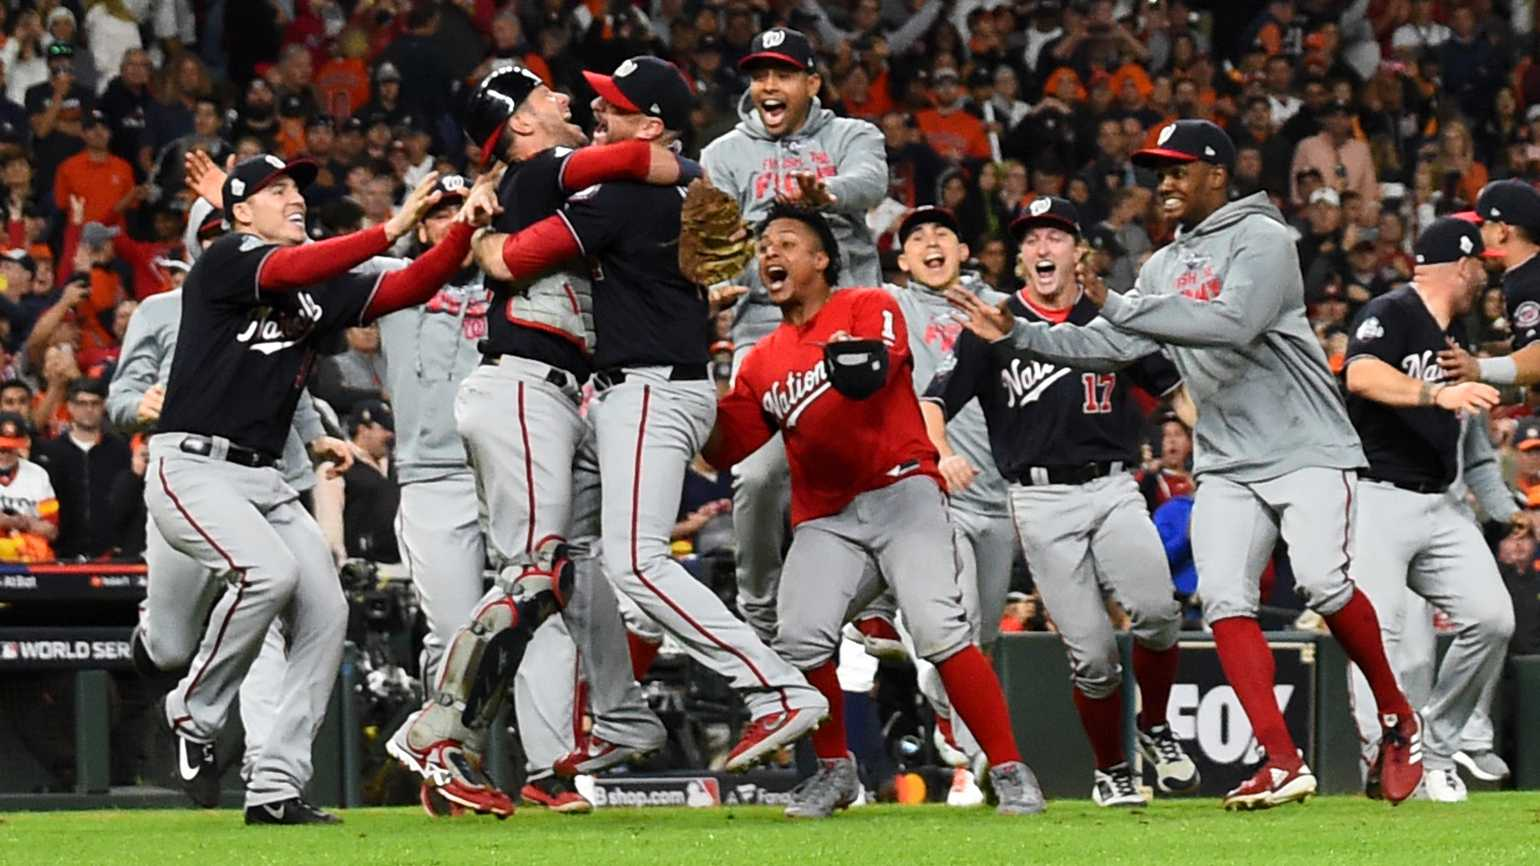 Nationals win the World Series